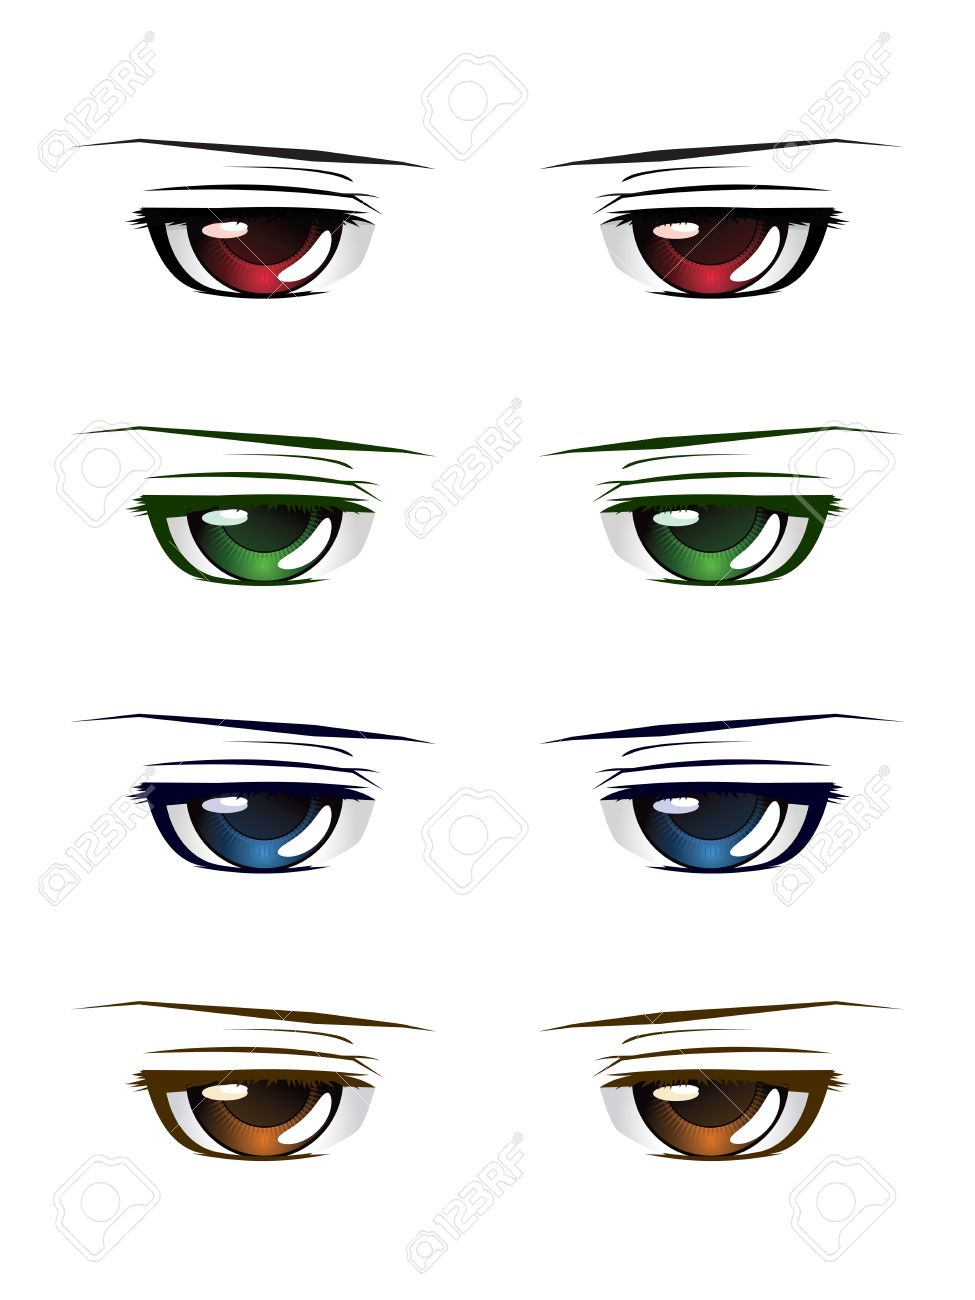 Manga anime style male eyes of different colors set on white background stock vector